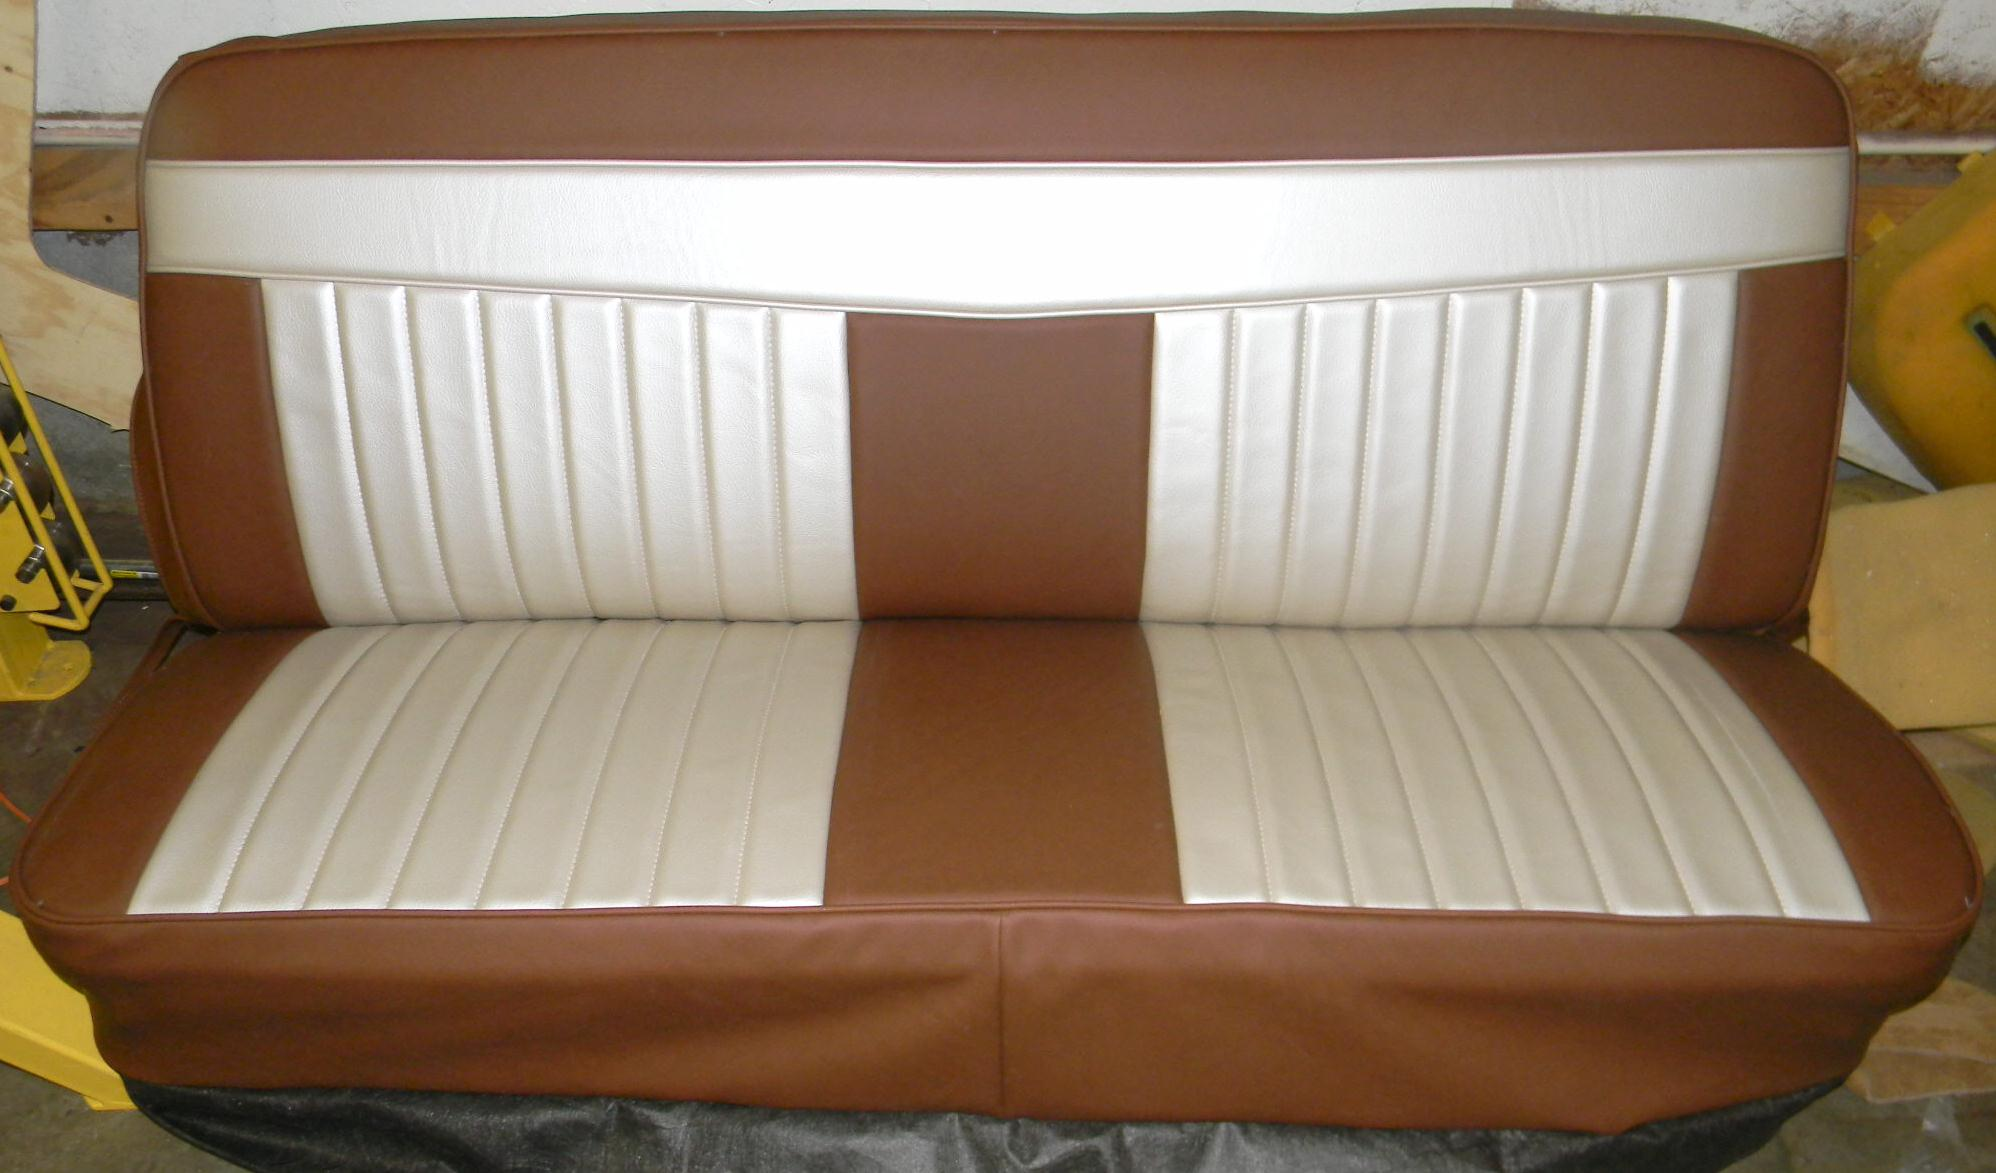 Rick s custom upholstery automobile seatcovers tops upholstery columbia tennessee